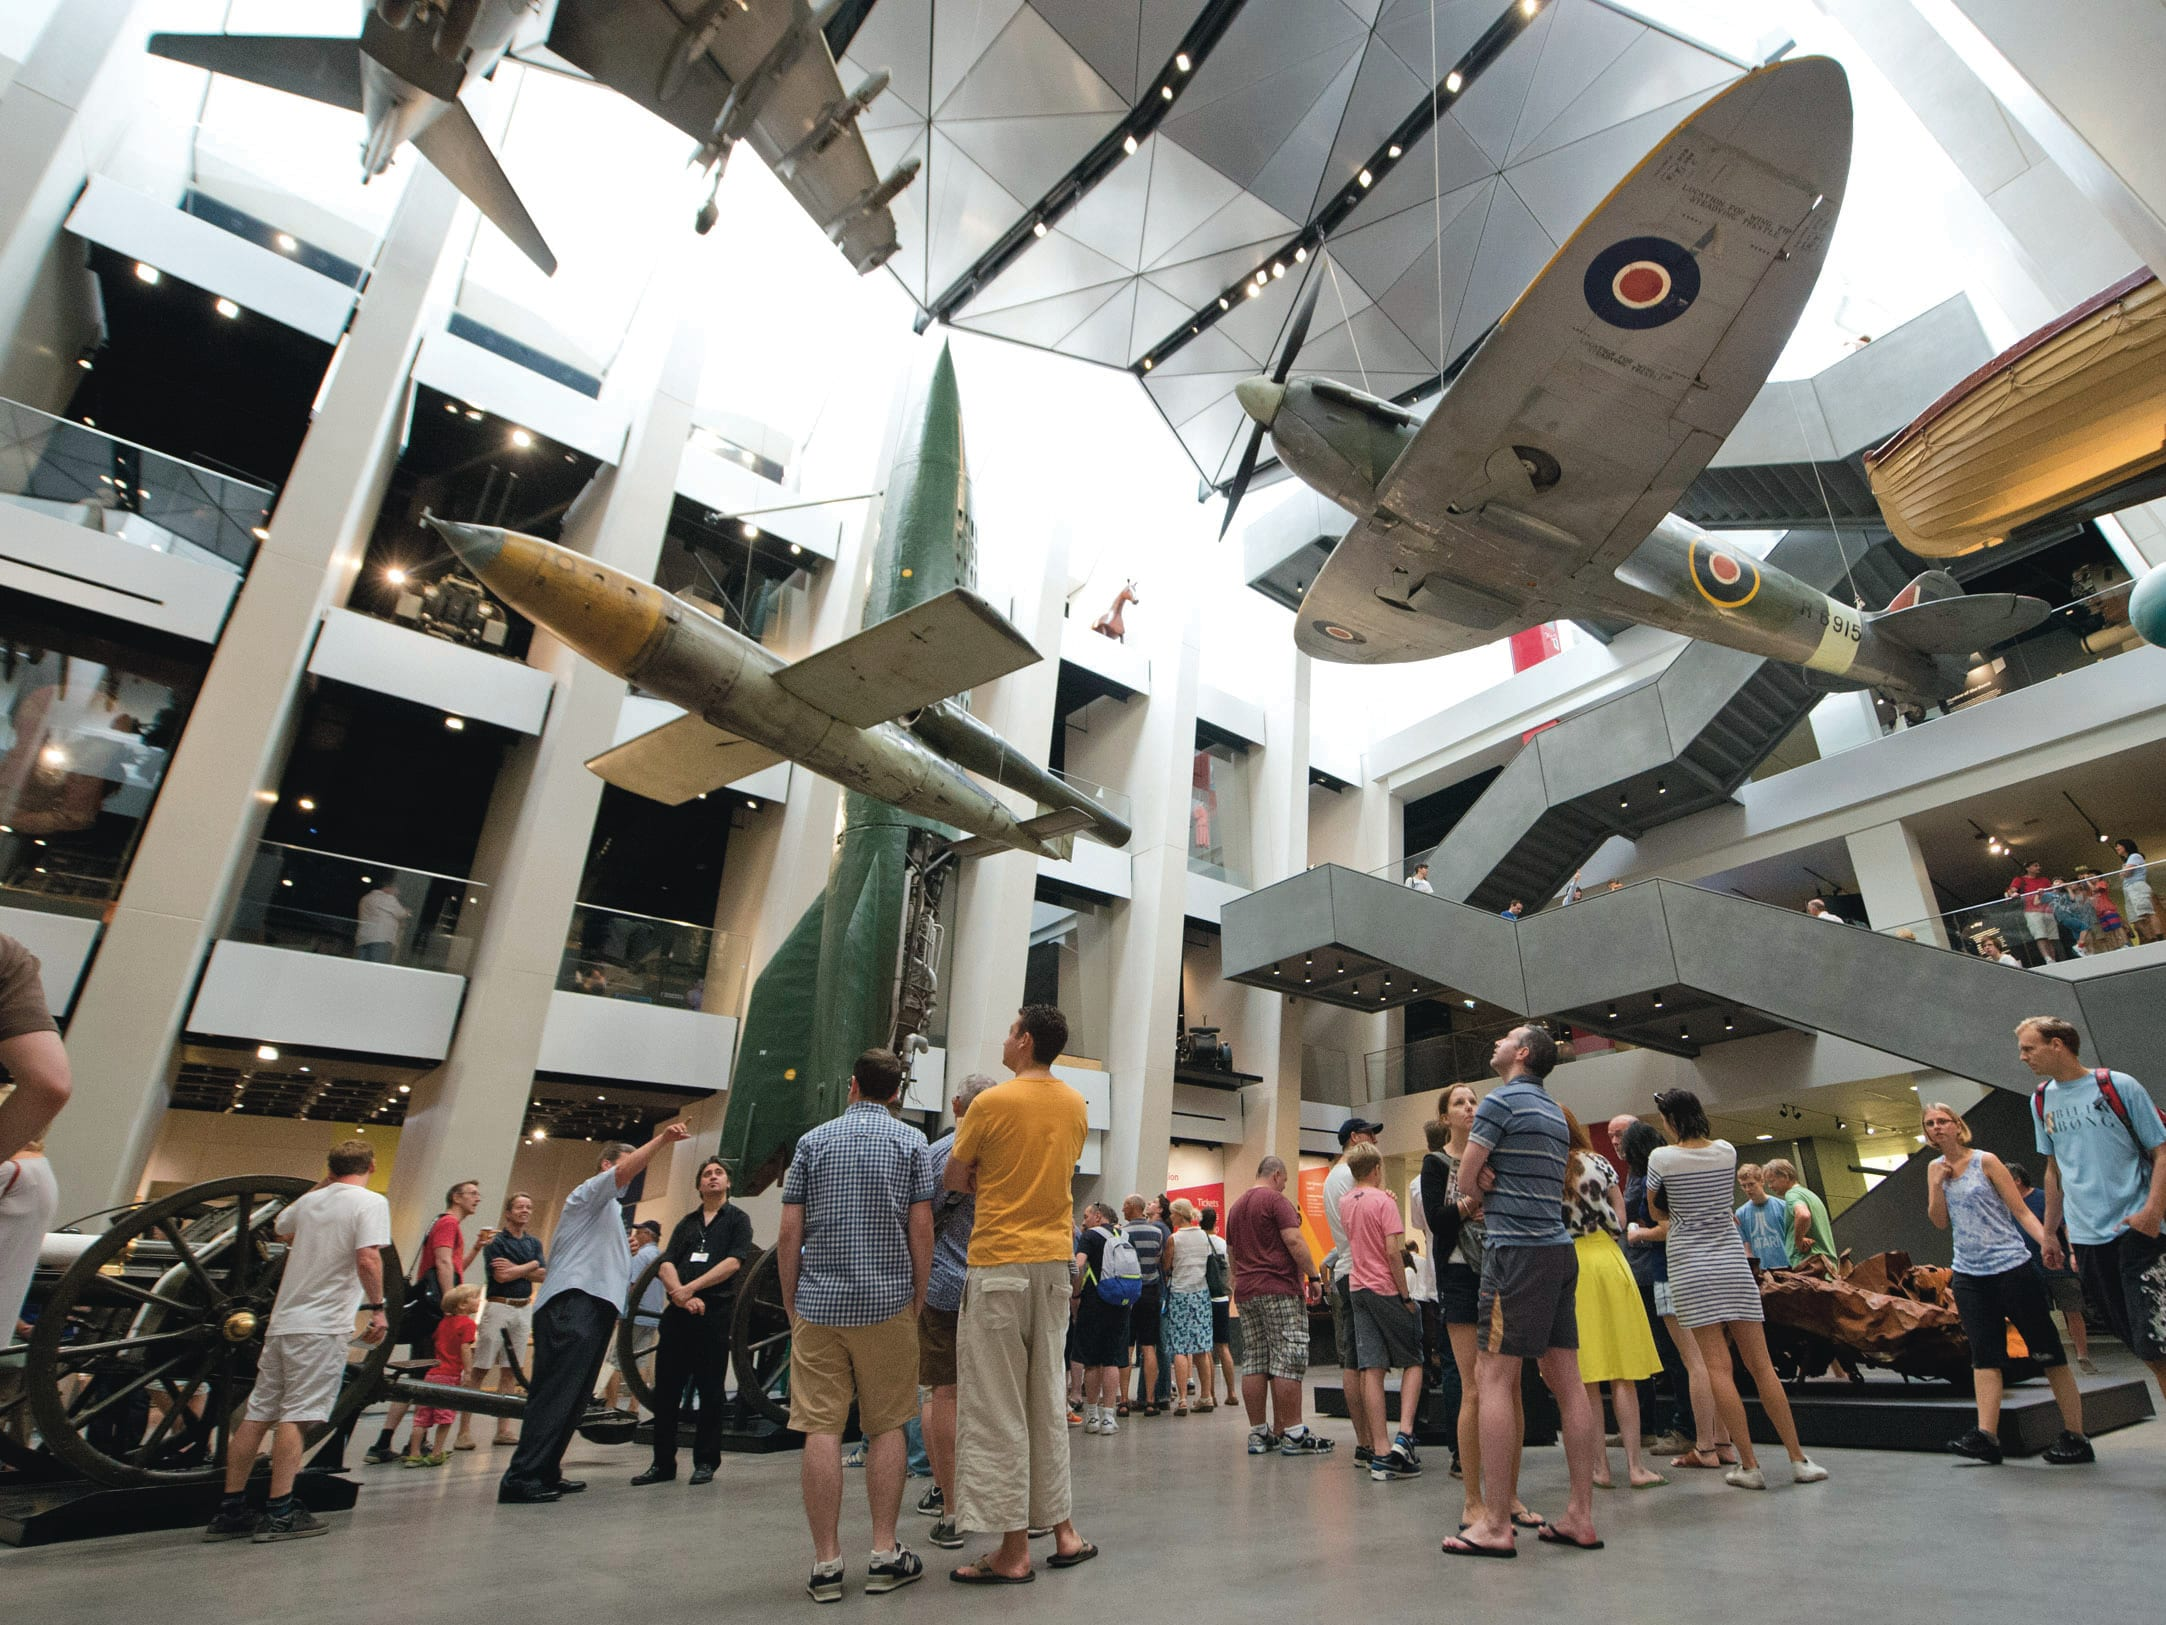 People standing underneath hanging aeroplanes in a museum.